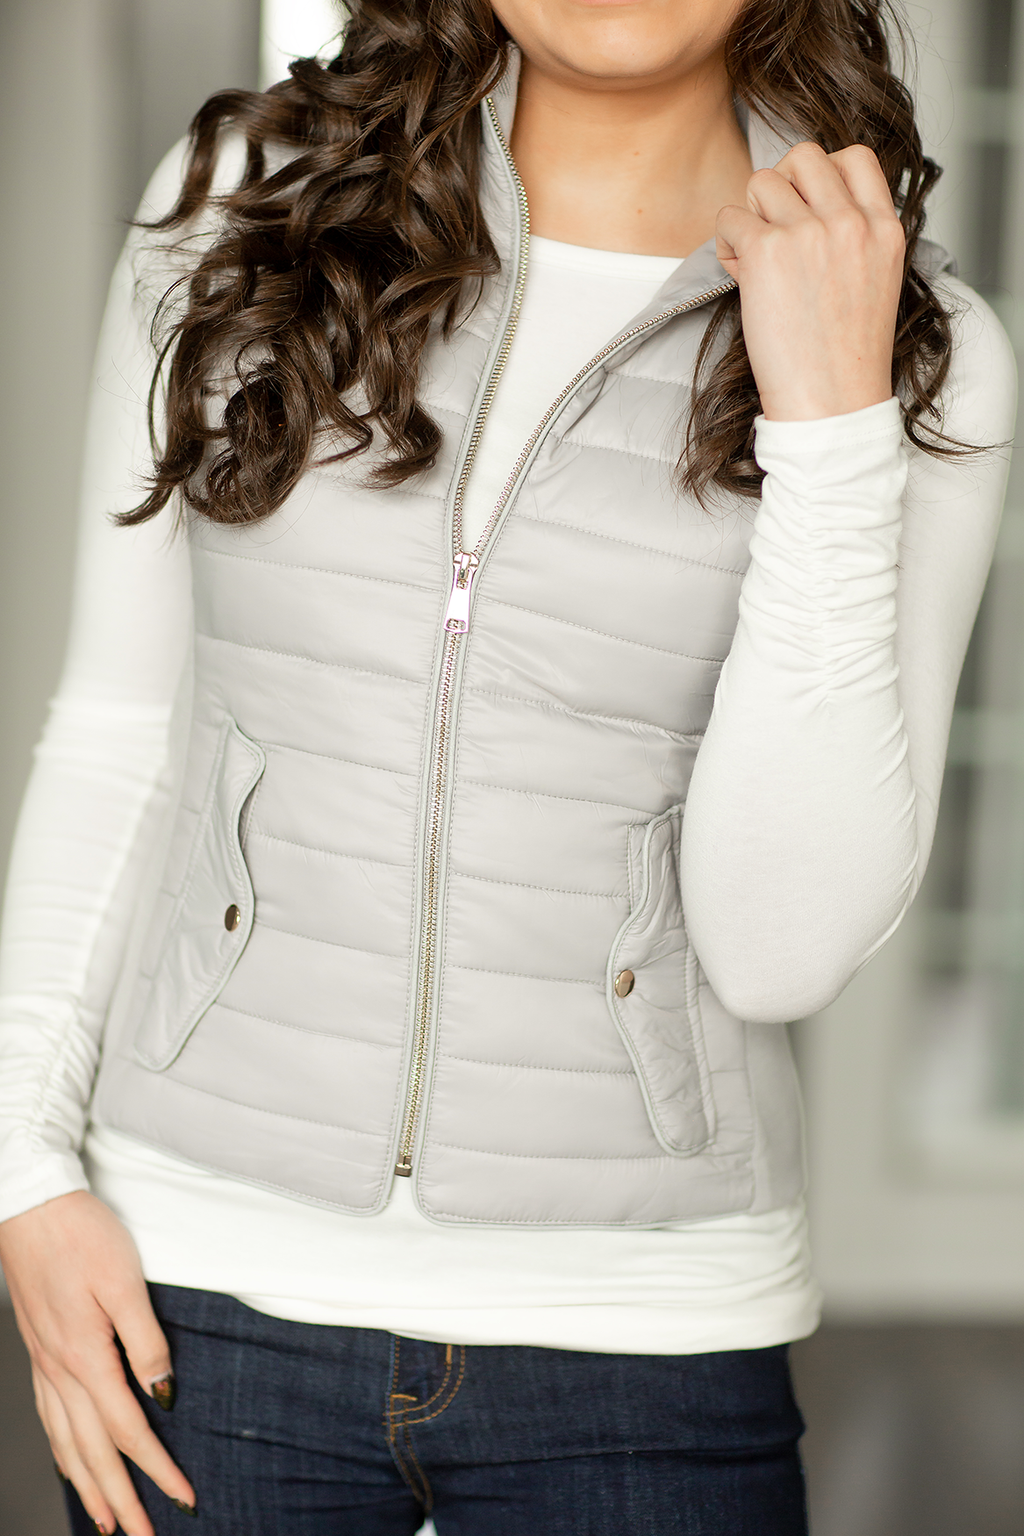 Sweetly Yours Vest in Gray